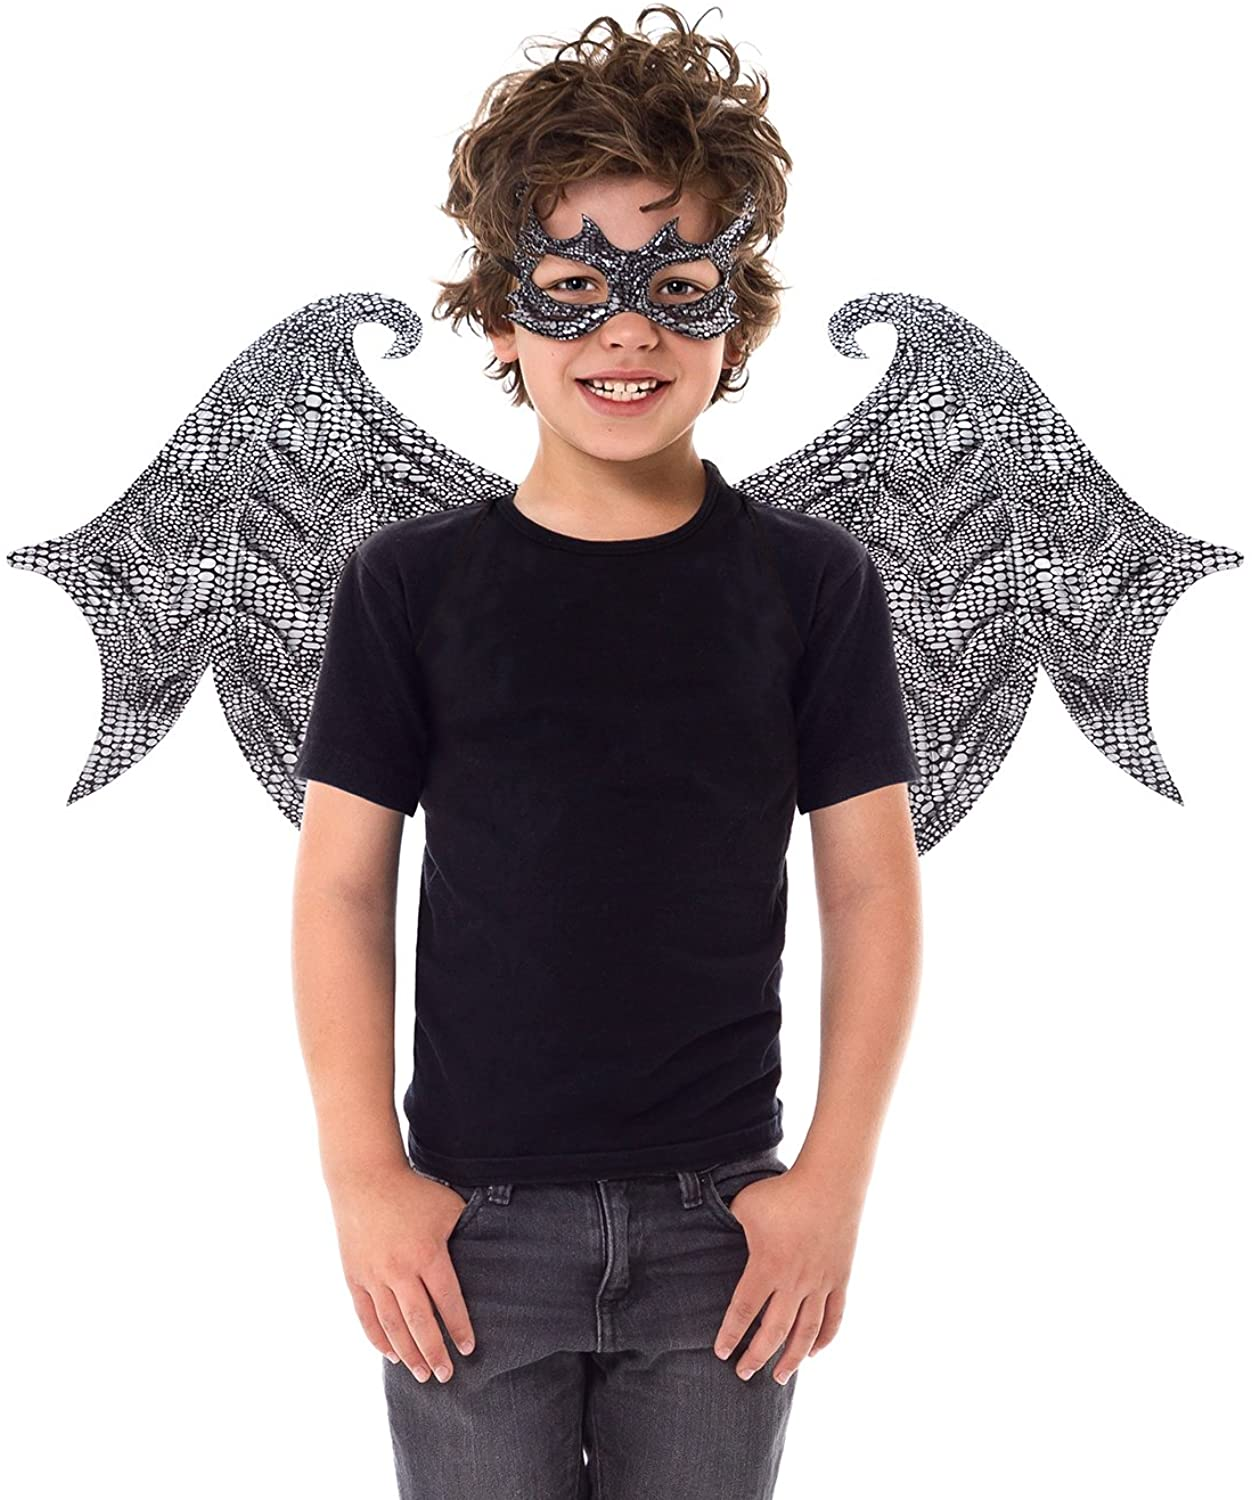 Little Adventures Reversible Dragon Mask and Wing Sets for Boys & Girls (Ages 3-8) (Black)